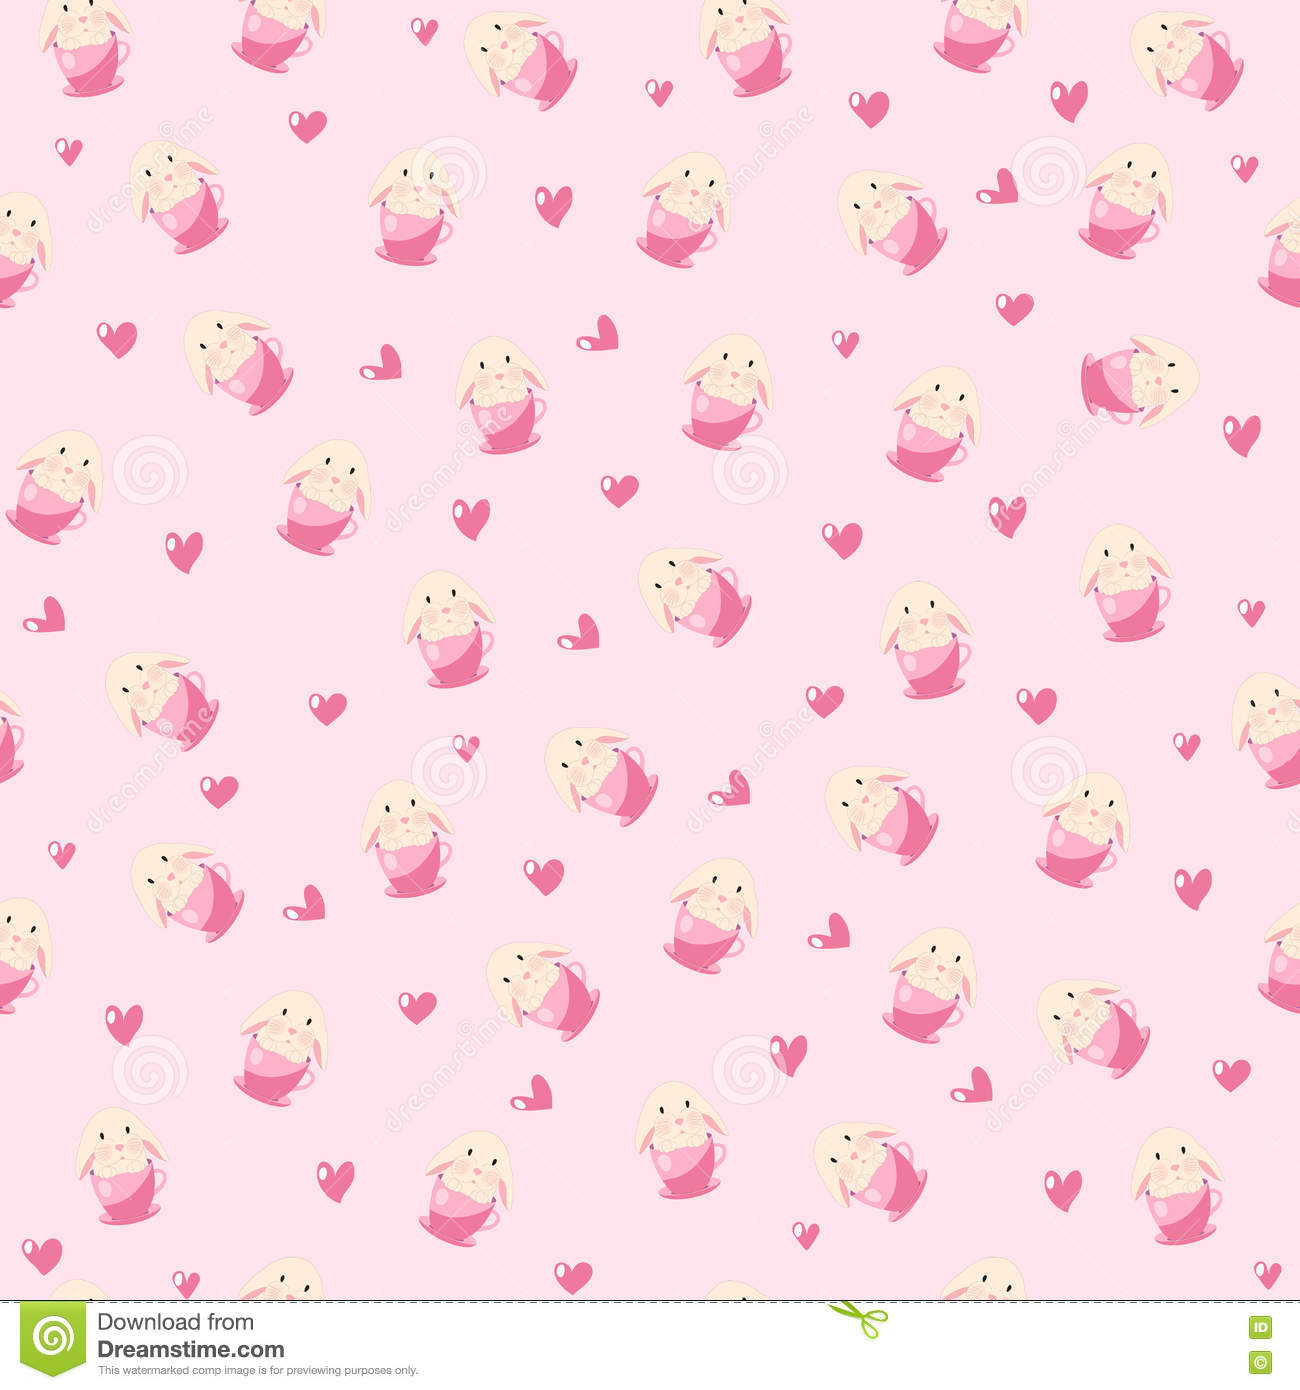 Kawaii Iphone Wallpaper Kawaii Iphone Images Free Download